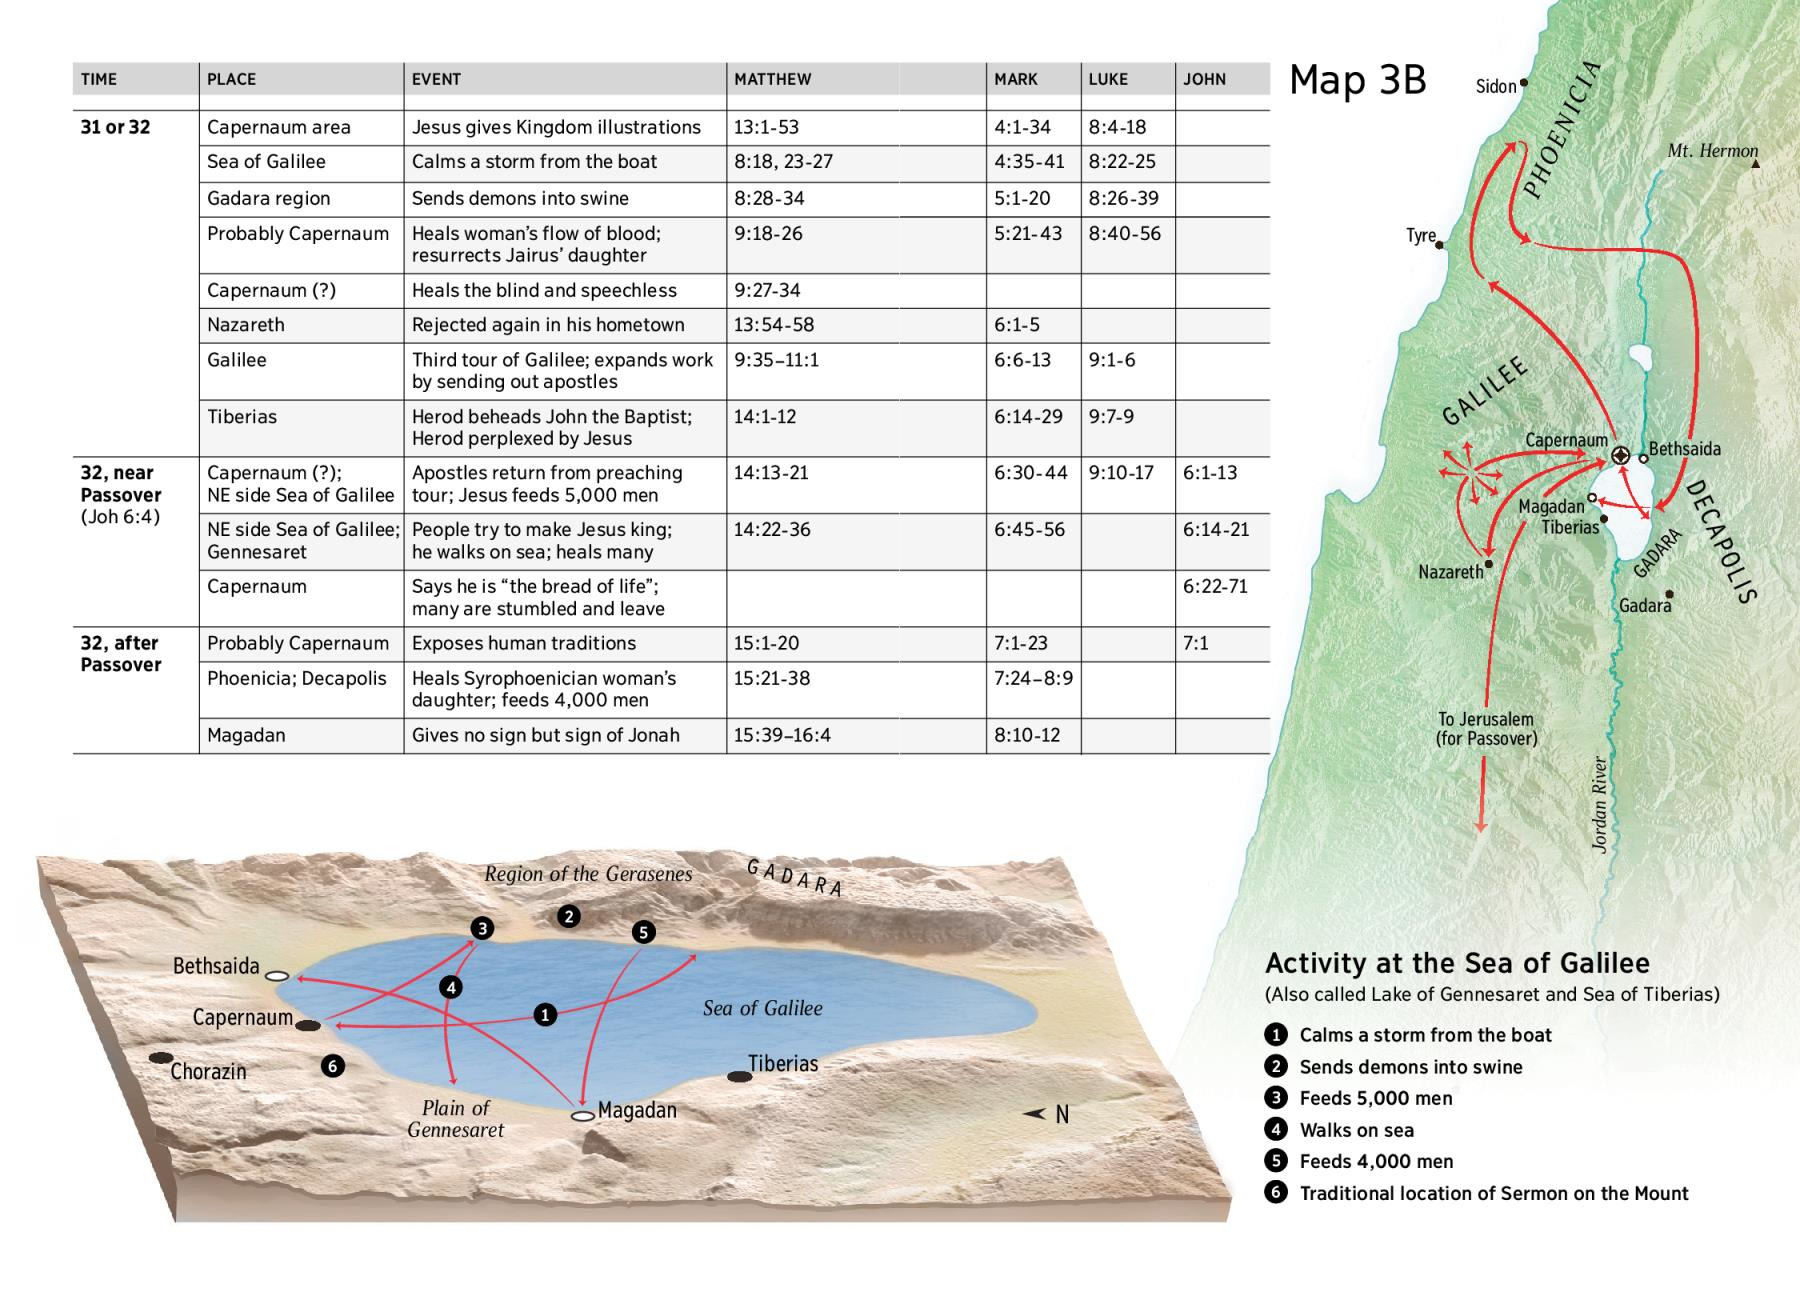 ad main events of jesus' earthly life—jesus' great ministry in. jesus at the sea of galilee and capernaum (chart and map)  nwt